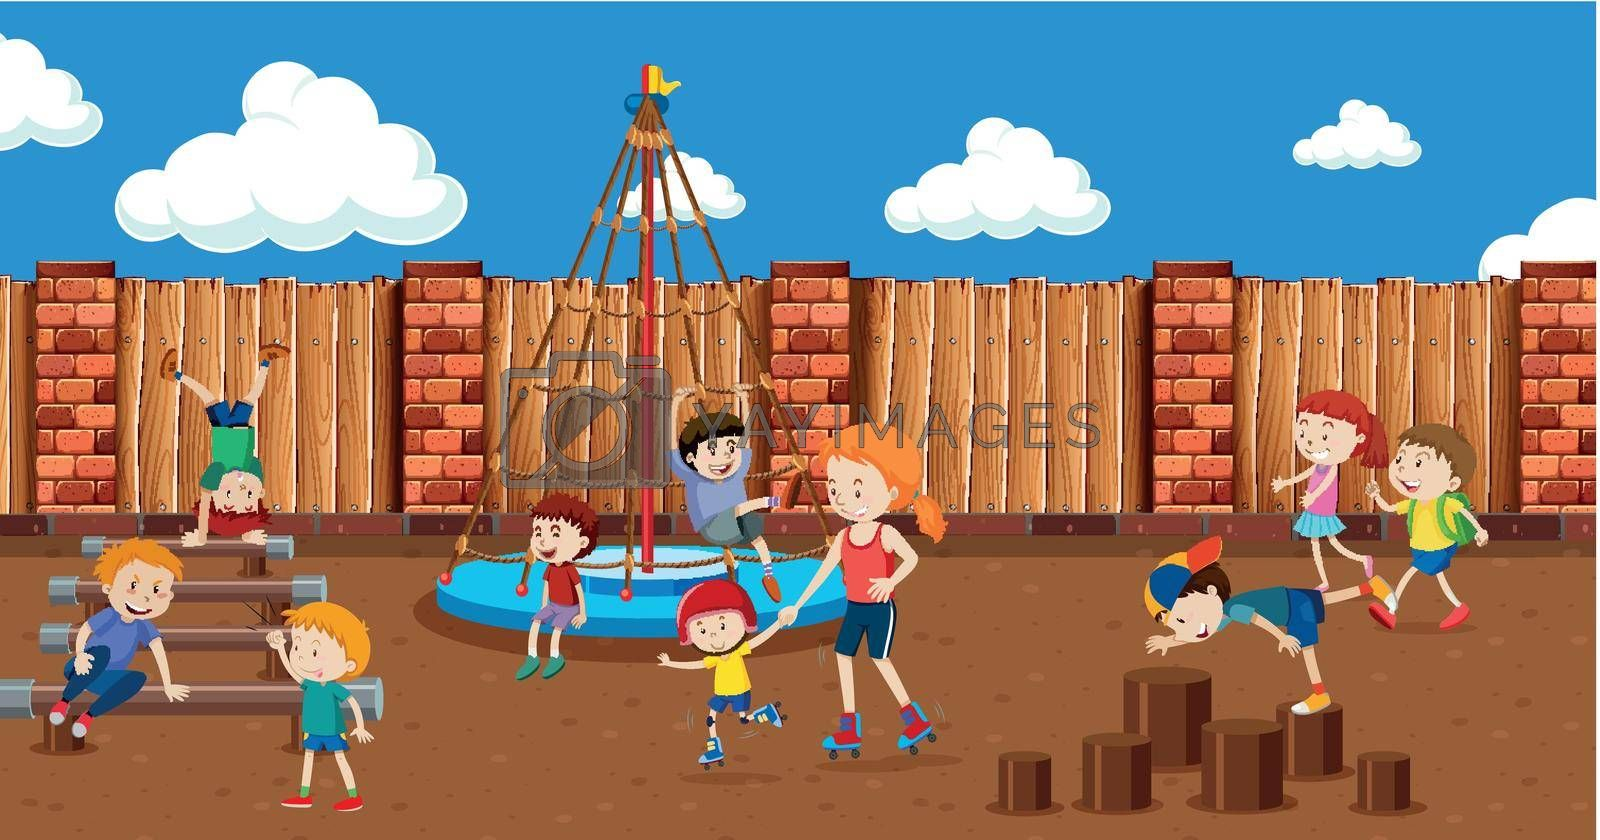 Royalty free image of People at the playground by iimages